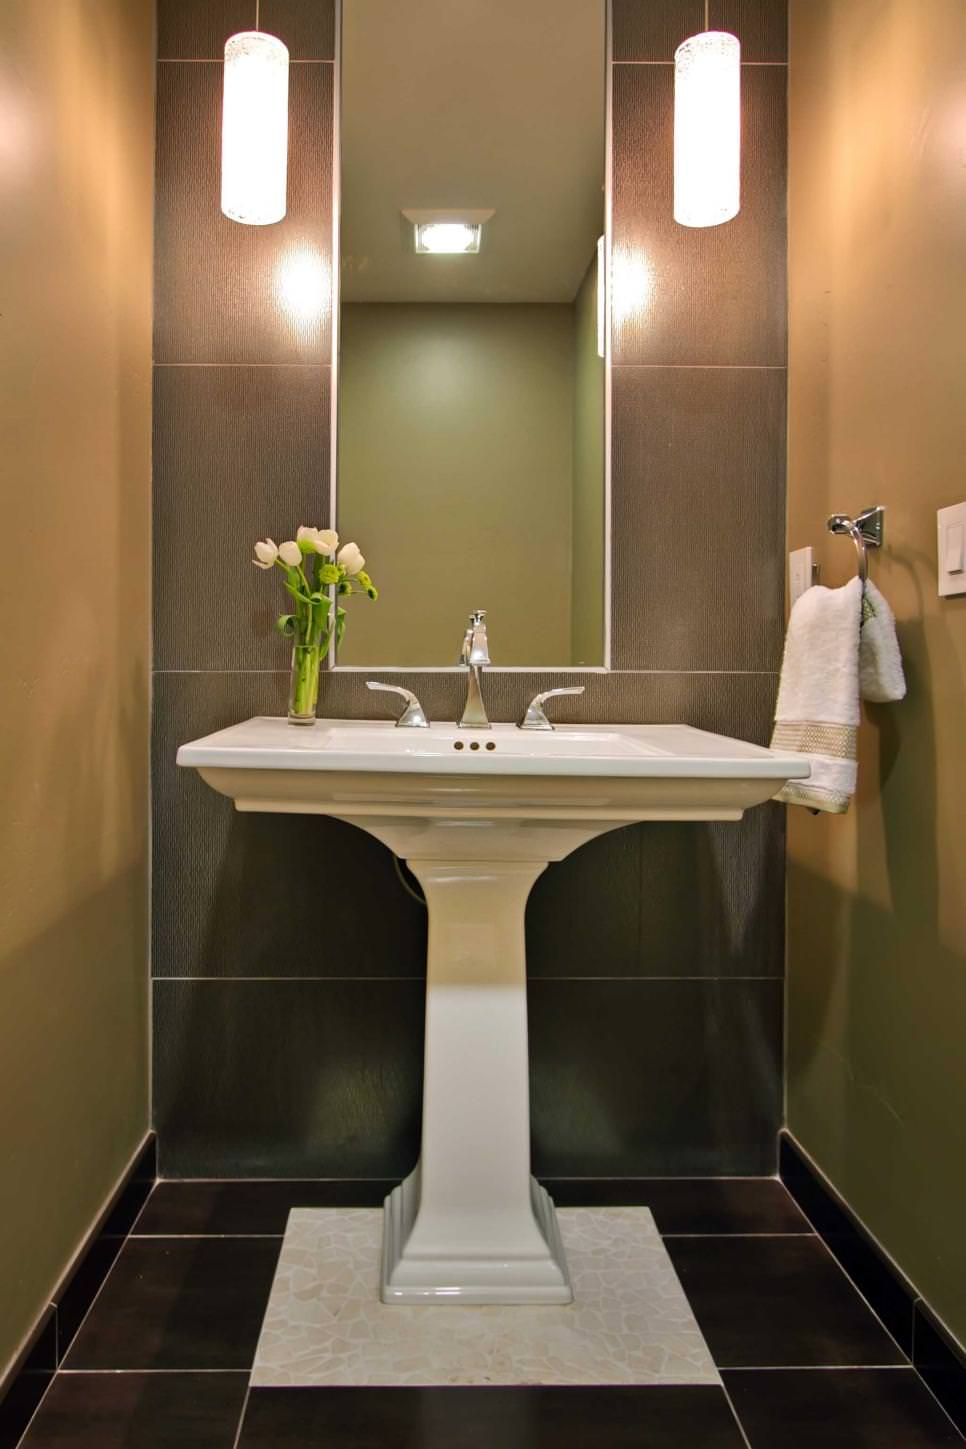 Pedestal Sink Bathroom Design Ideas : 24+ Bathroom Pedestal Sinks Ideas, Designs Design Trends